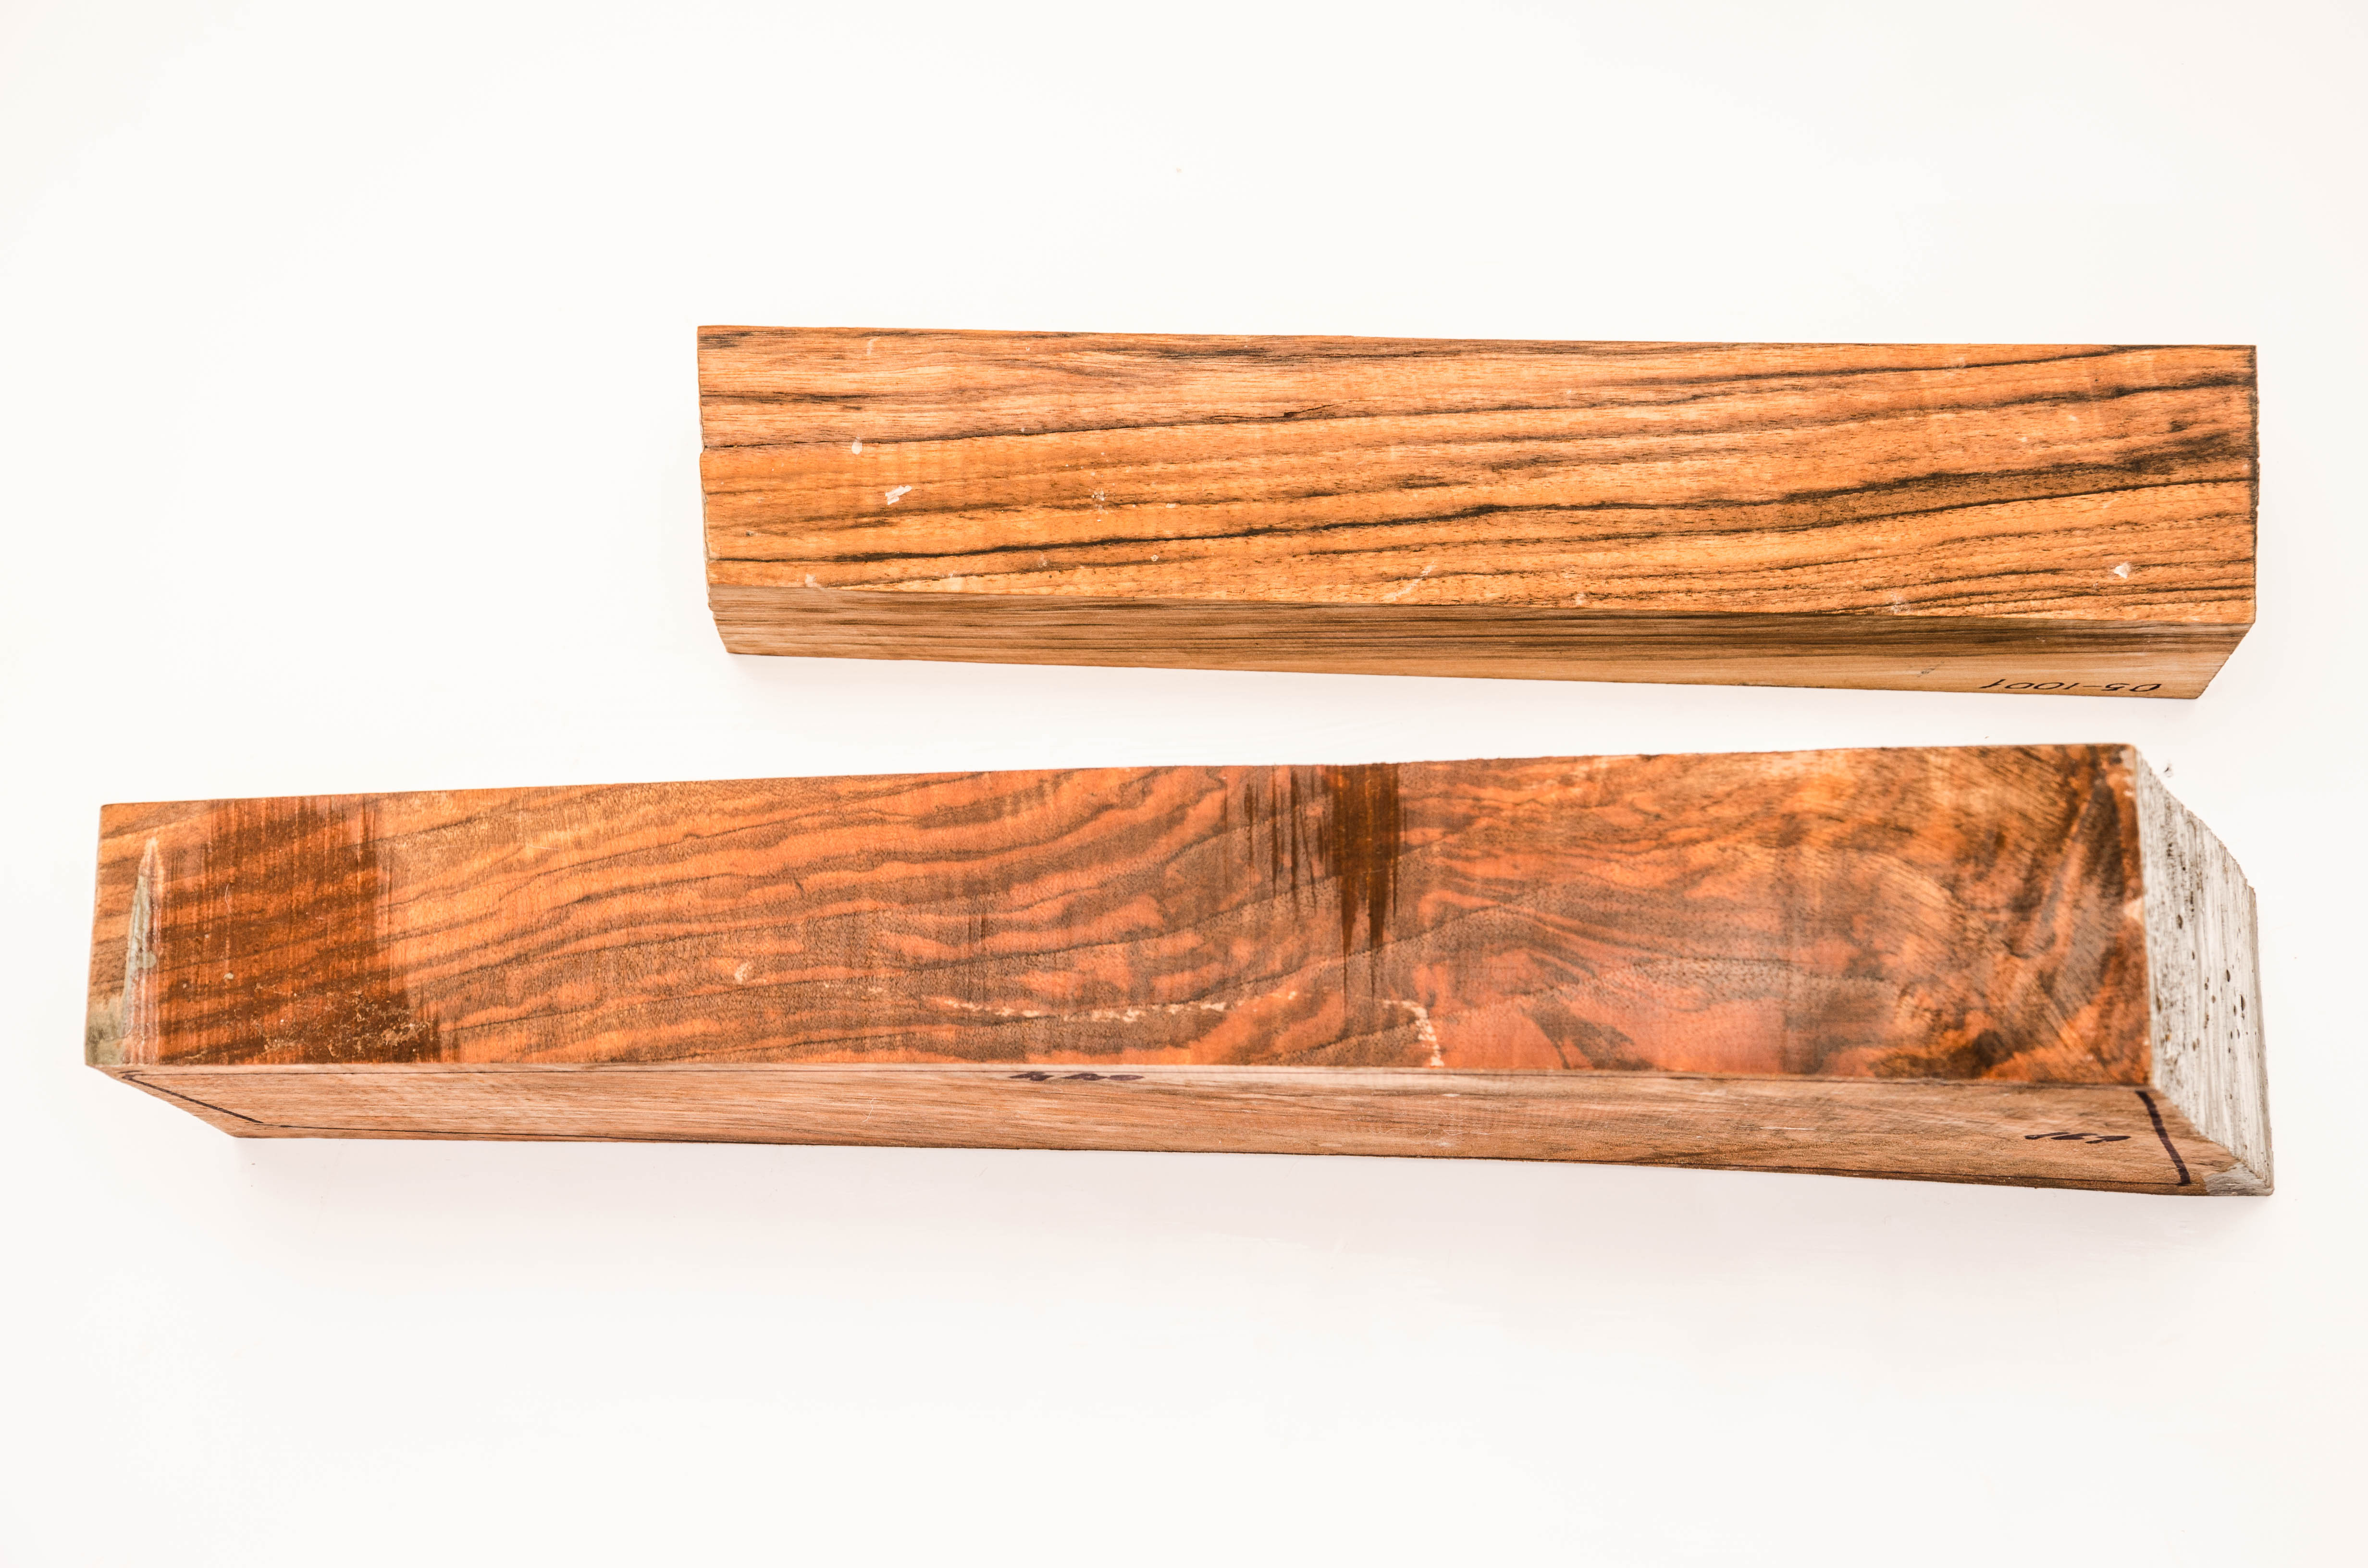 walnut_stock_blanks_for_guns_and_rifles-0494